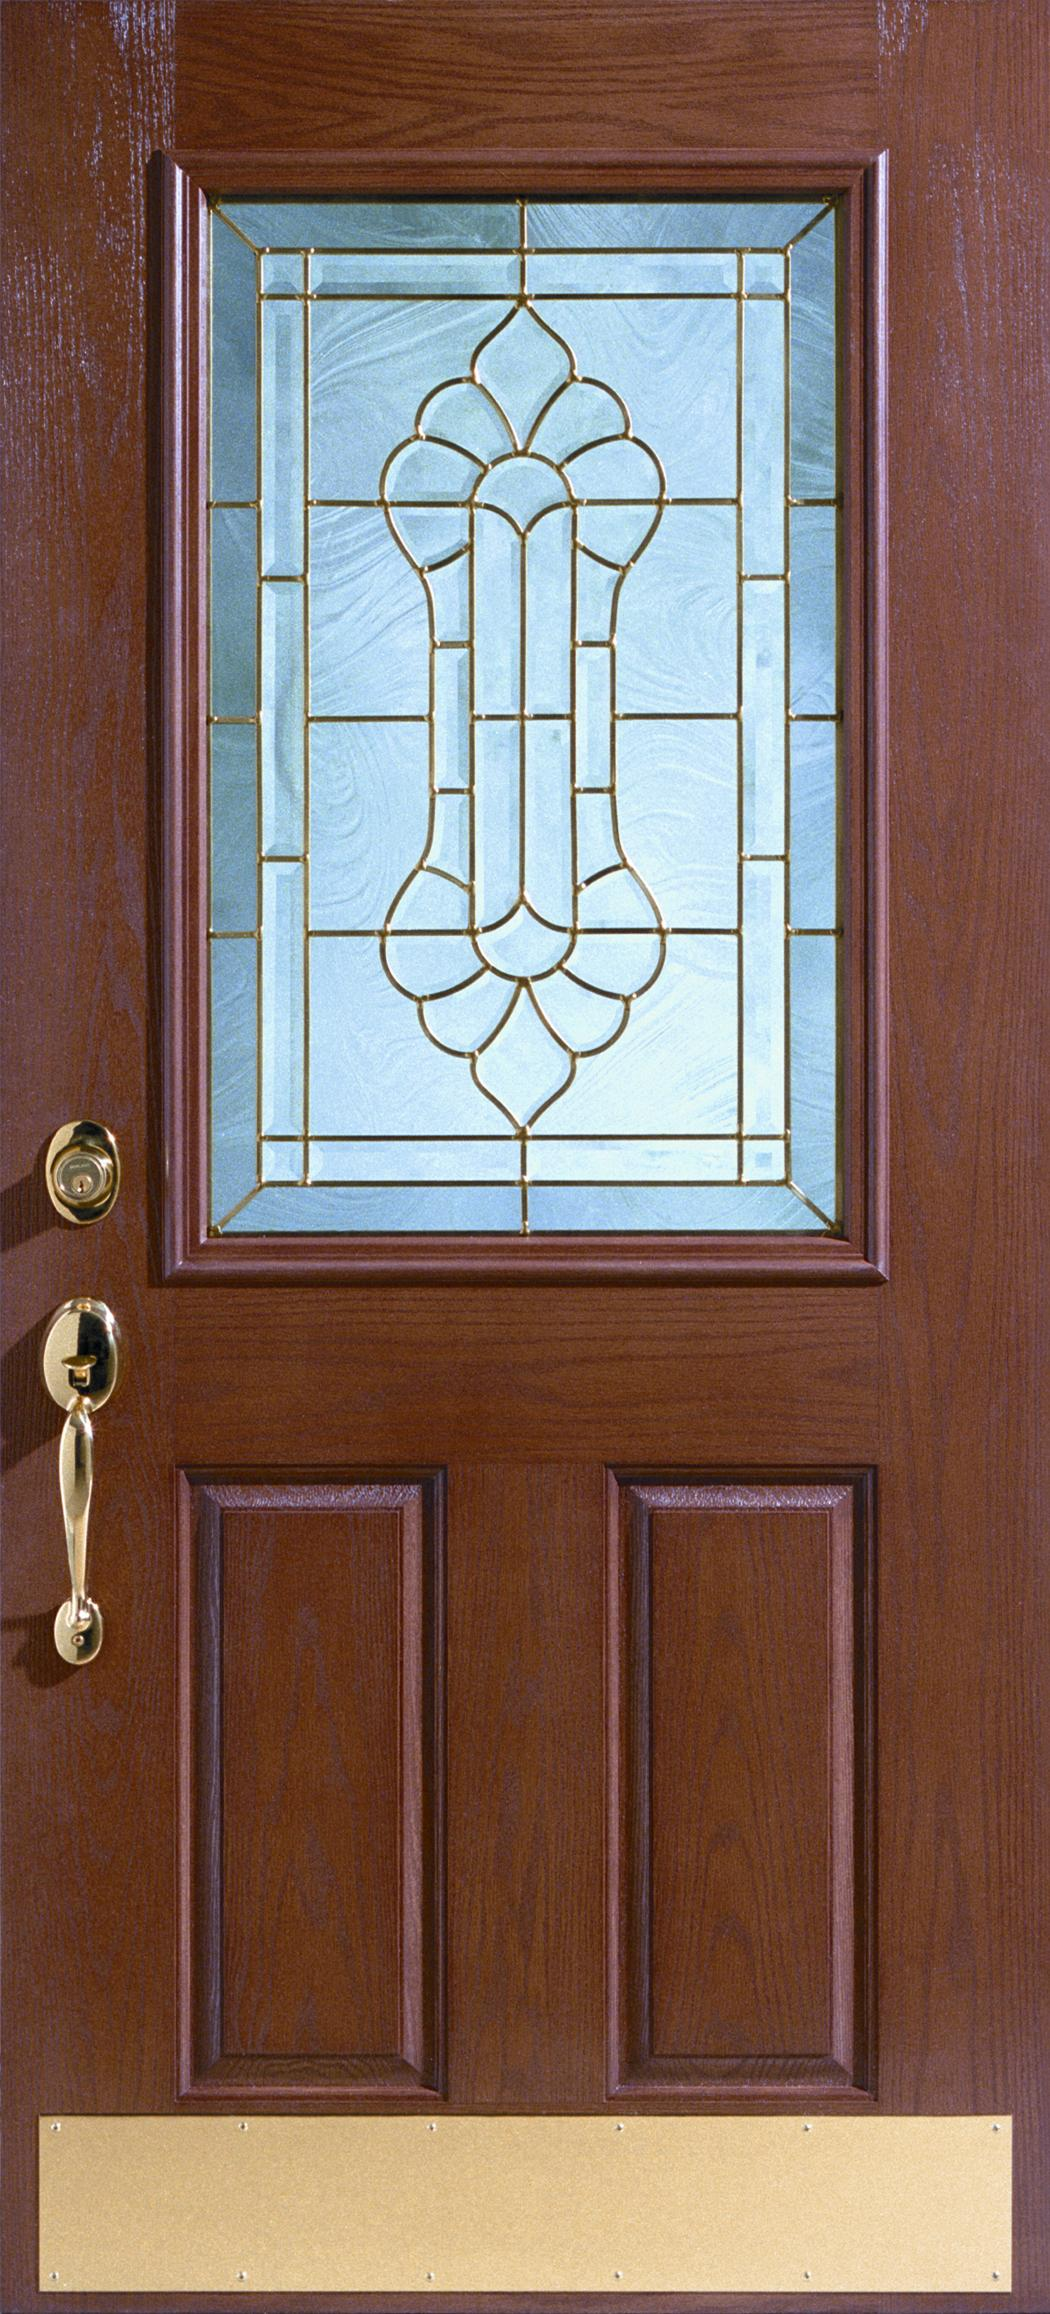 2314 #2E7C9D Residential Front Entry Doors Fiberglass Entry Doors pic Fiberglass Entry Doors With Glass 38611050